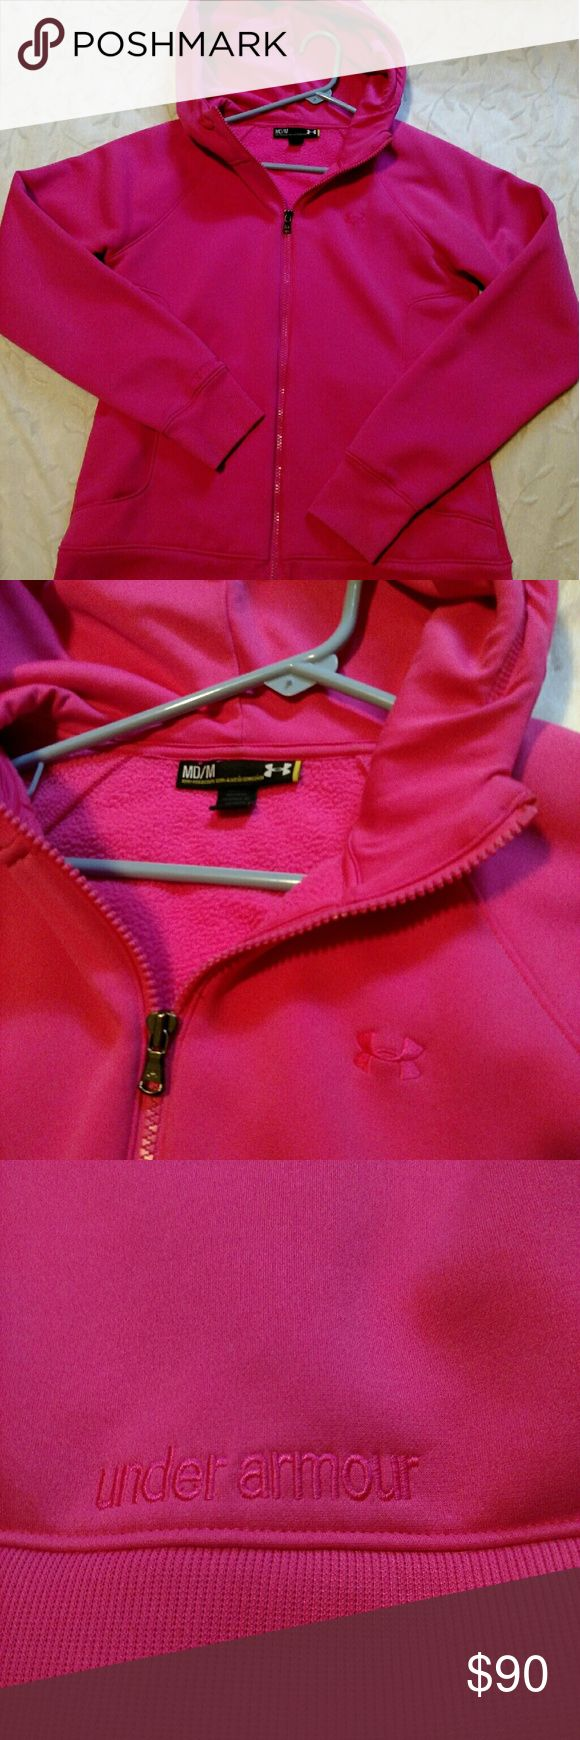 UNDER ARMOUR STORM ZIP UP Women Under Armou Stormr zip up, size medium. Semi- fitted/coupe. ( MD/M). Worn once. Bought a black one instead. Condition is good, does have one small stain. ( Left arm) Not very noticeable. No more stains that I can see. No rips or tears. Very warm! Color is Pink. Retails $119.00, bought from Gander mountain. Does not list material it's made of. I believe it's 100% polyester , its not fleece material. Under Armour Jackets & Coats